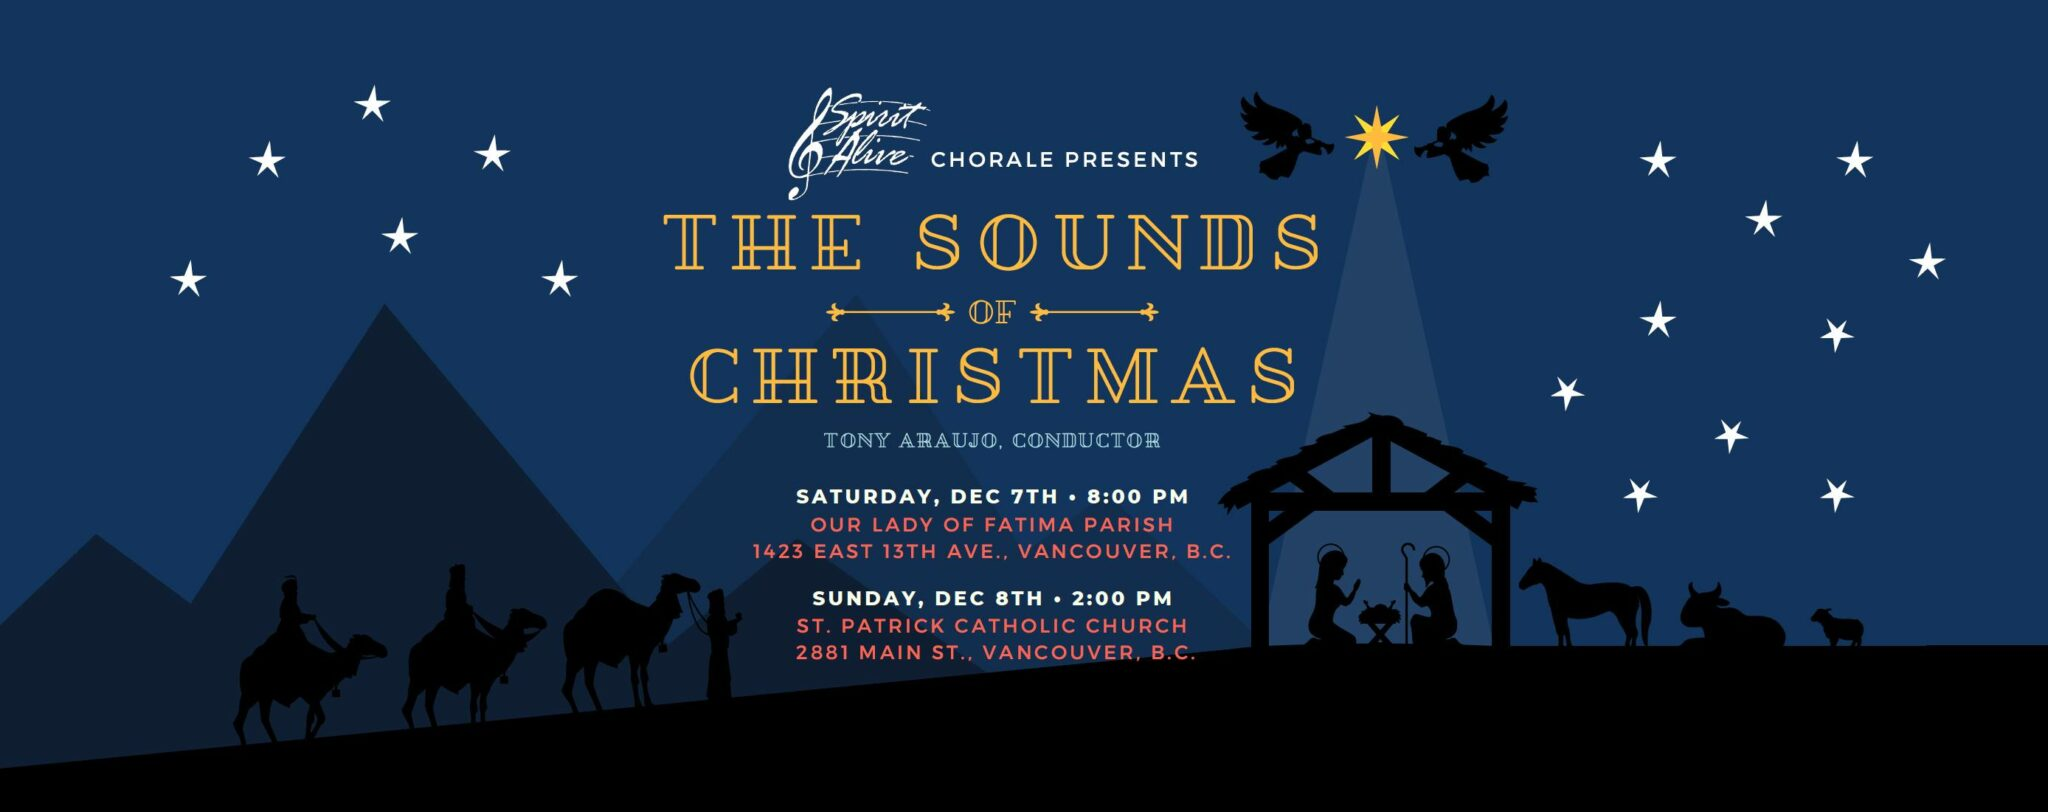 Spirit Alive Chorale, Sounds of Christmas